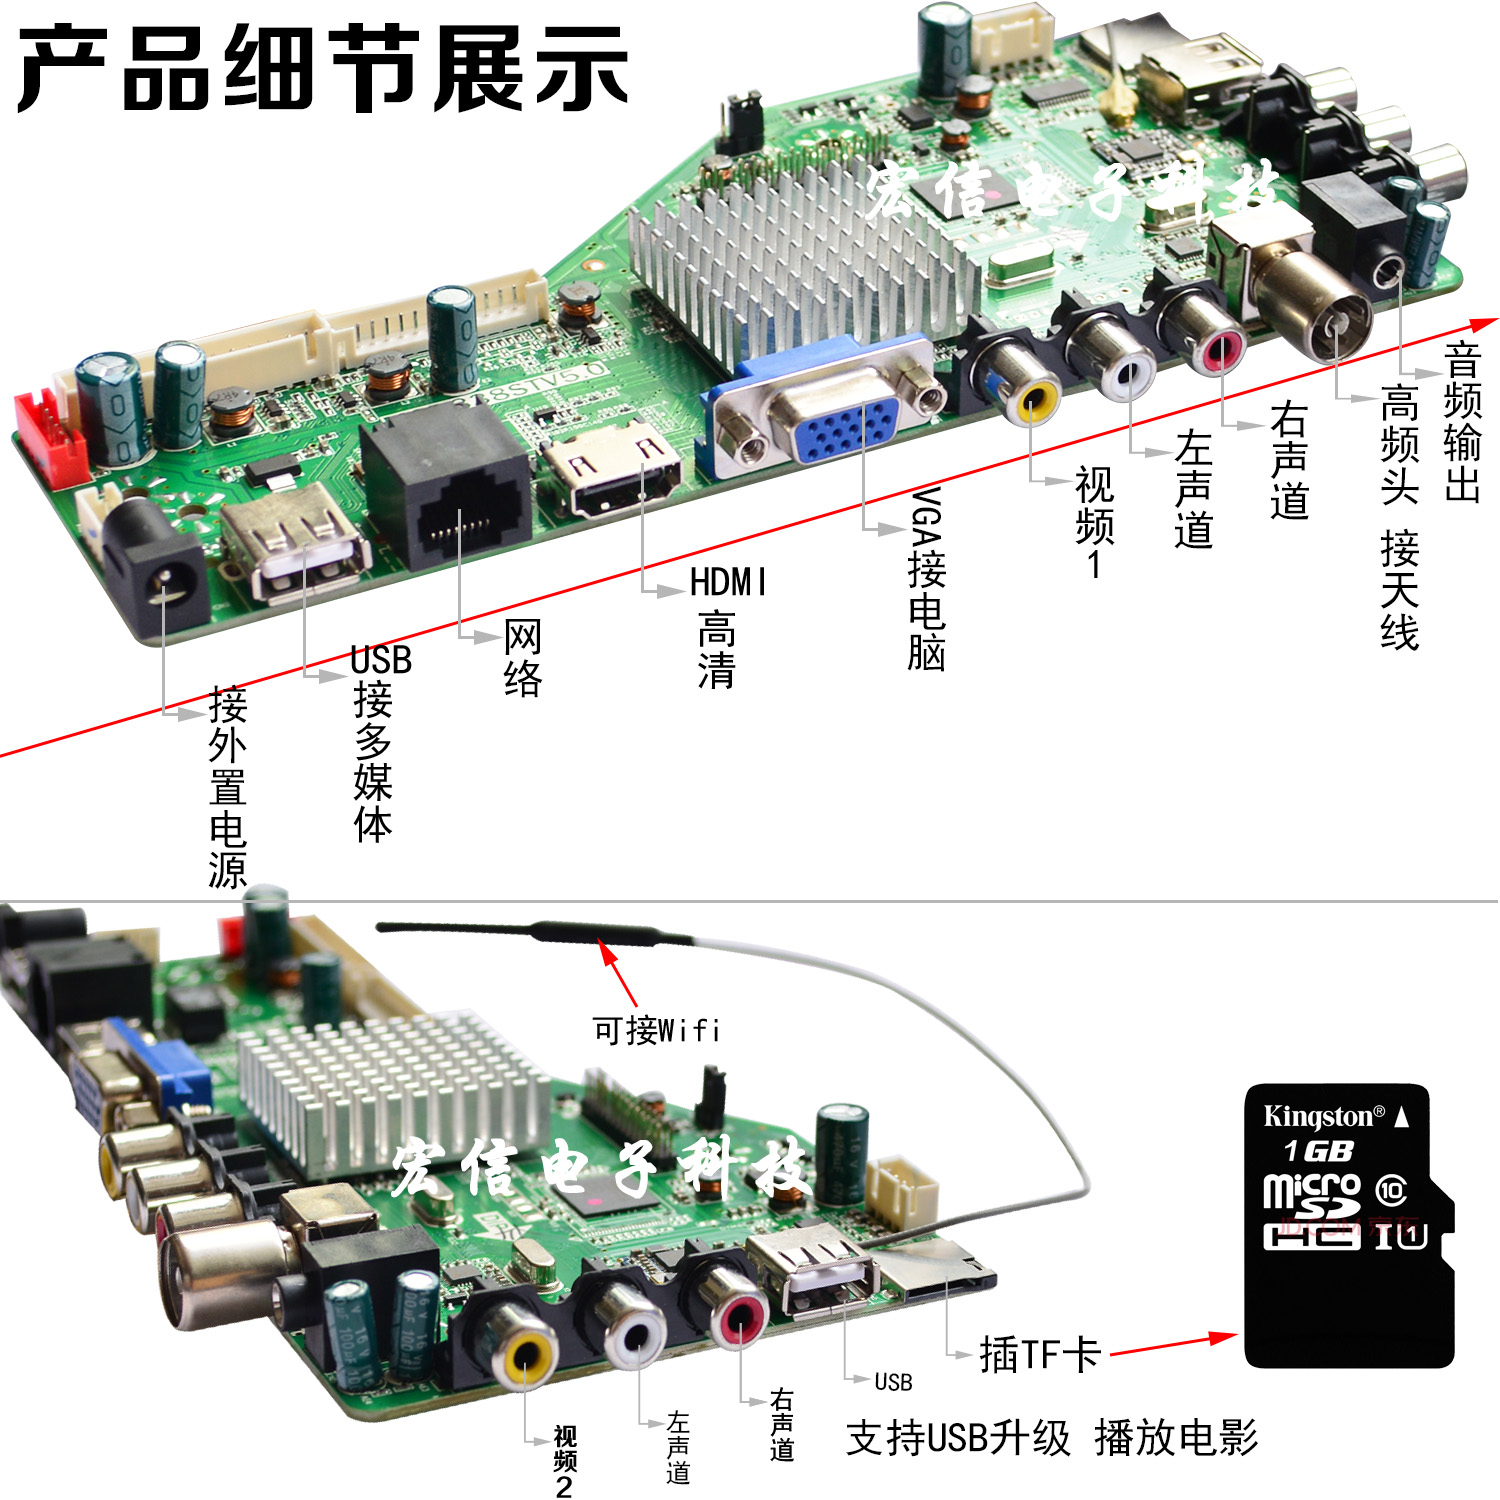 New original MSD338STV5 0 smart wireless network TV driver board universal  Android LCD motherboard